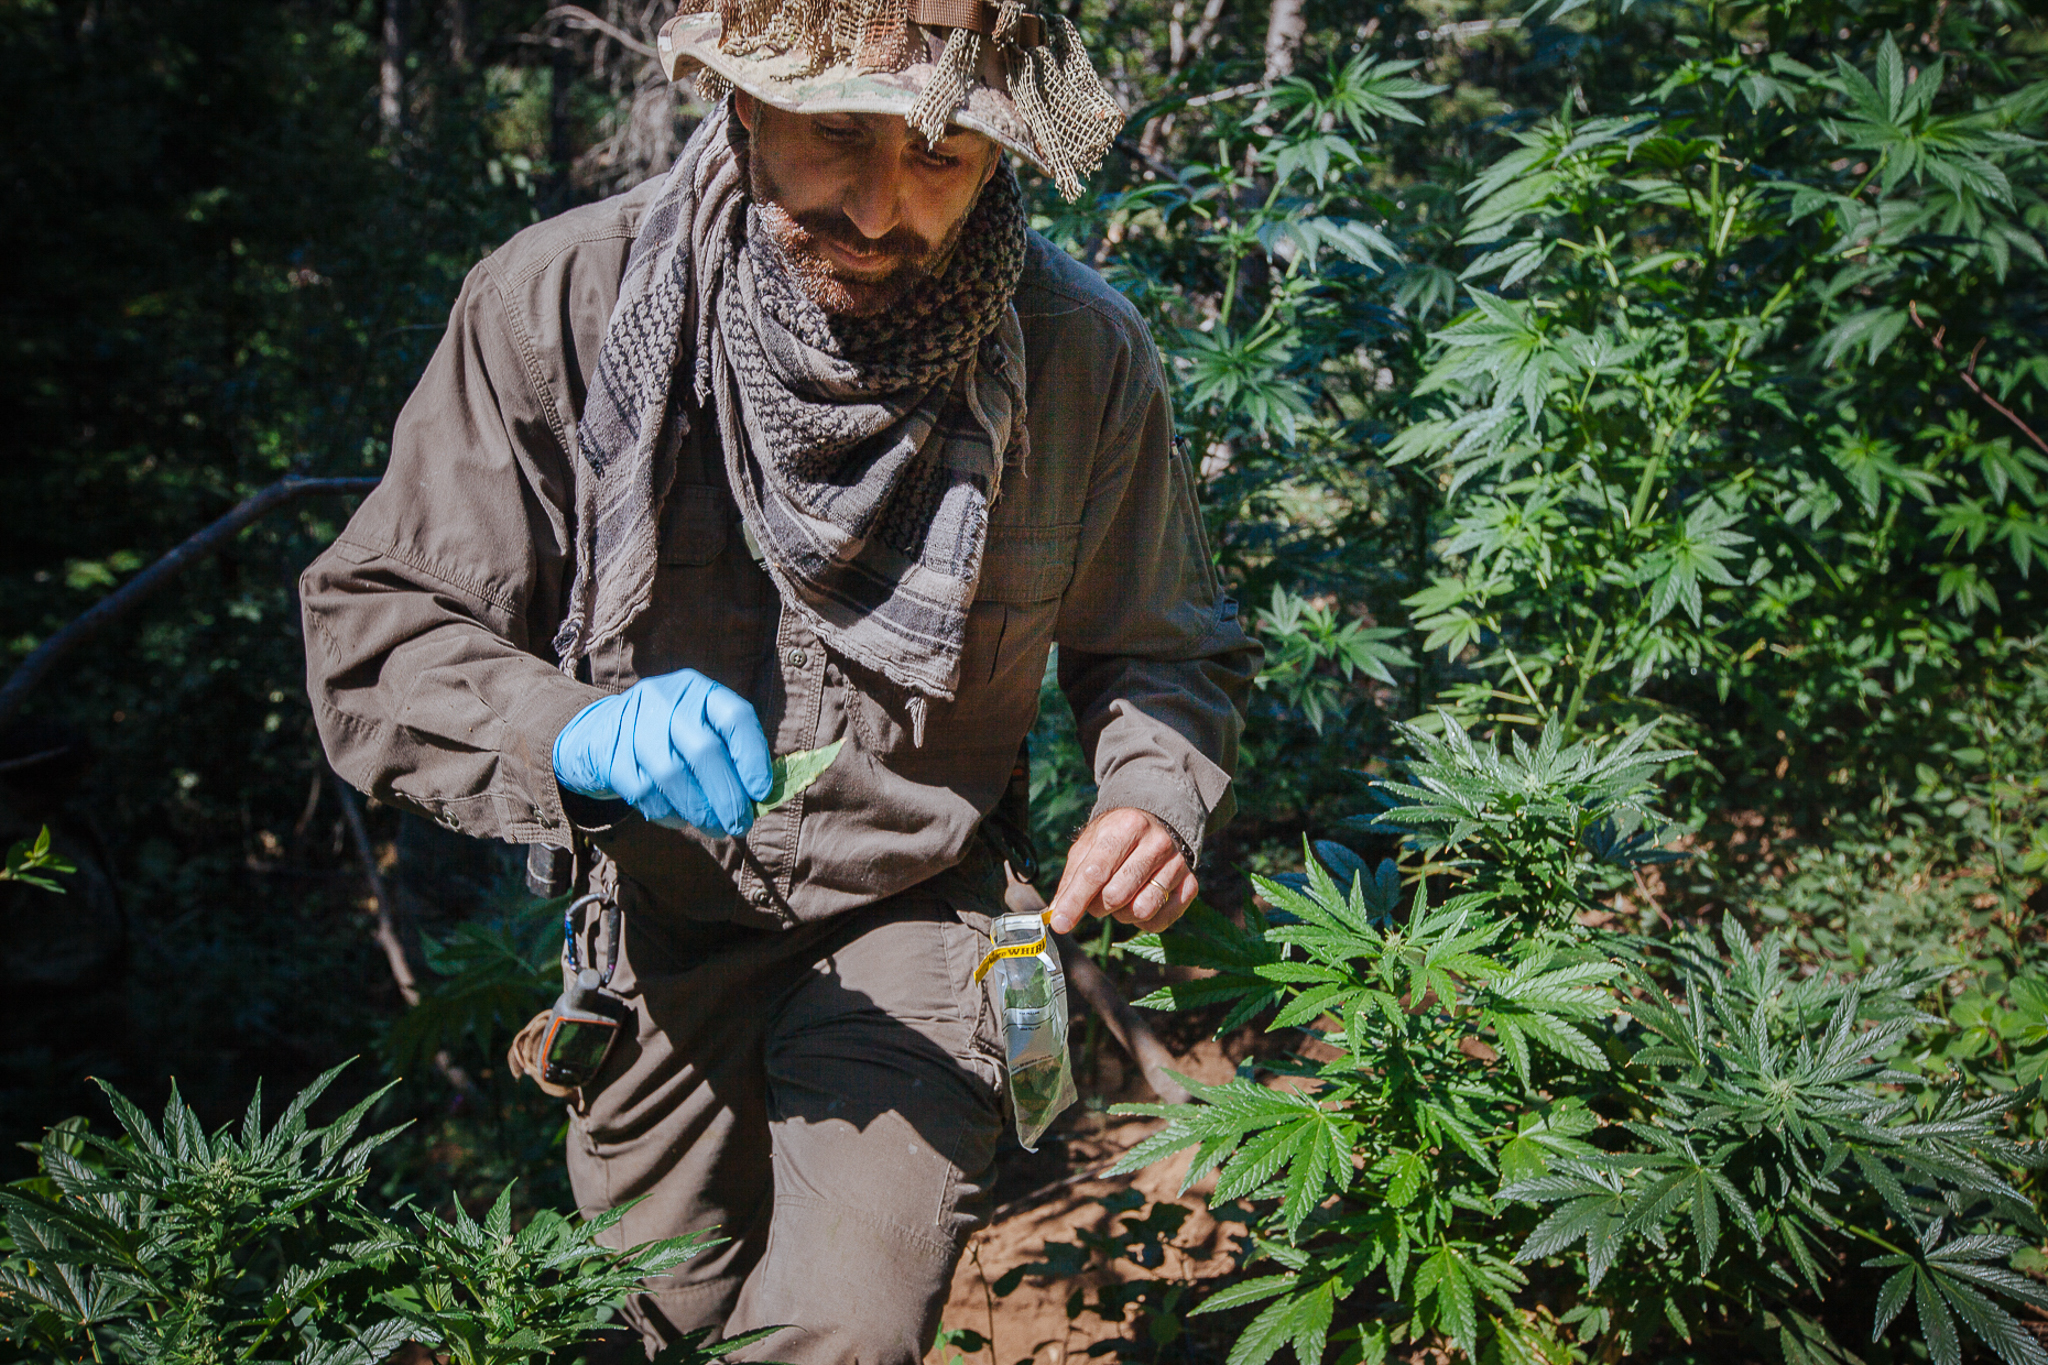 Dr. Mourad Gabriel picks leaves from marijuana plants across an illegal grow in Plumas National Forest. He will analyze the leaves for signs of illegal pesticides on the plants.